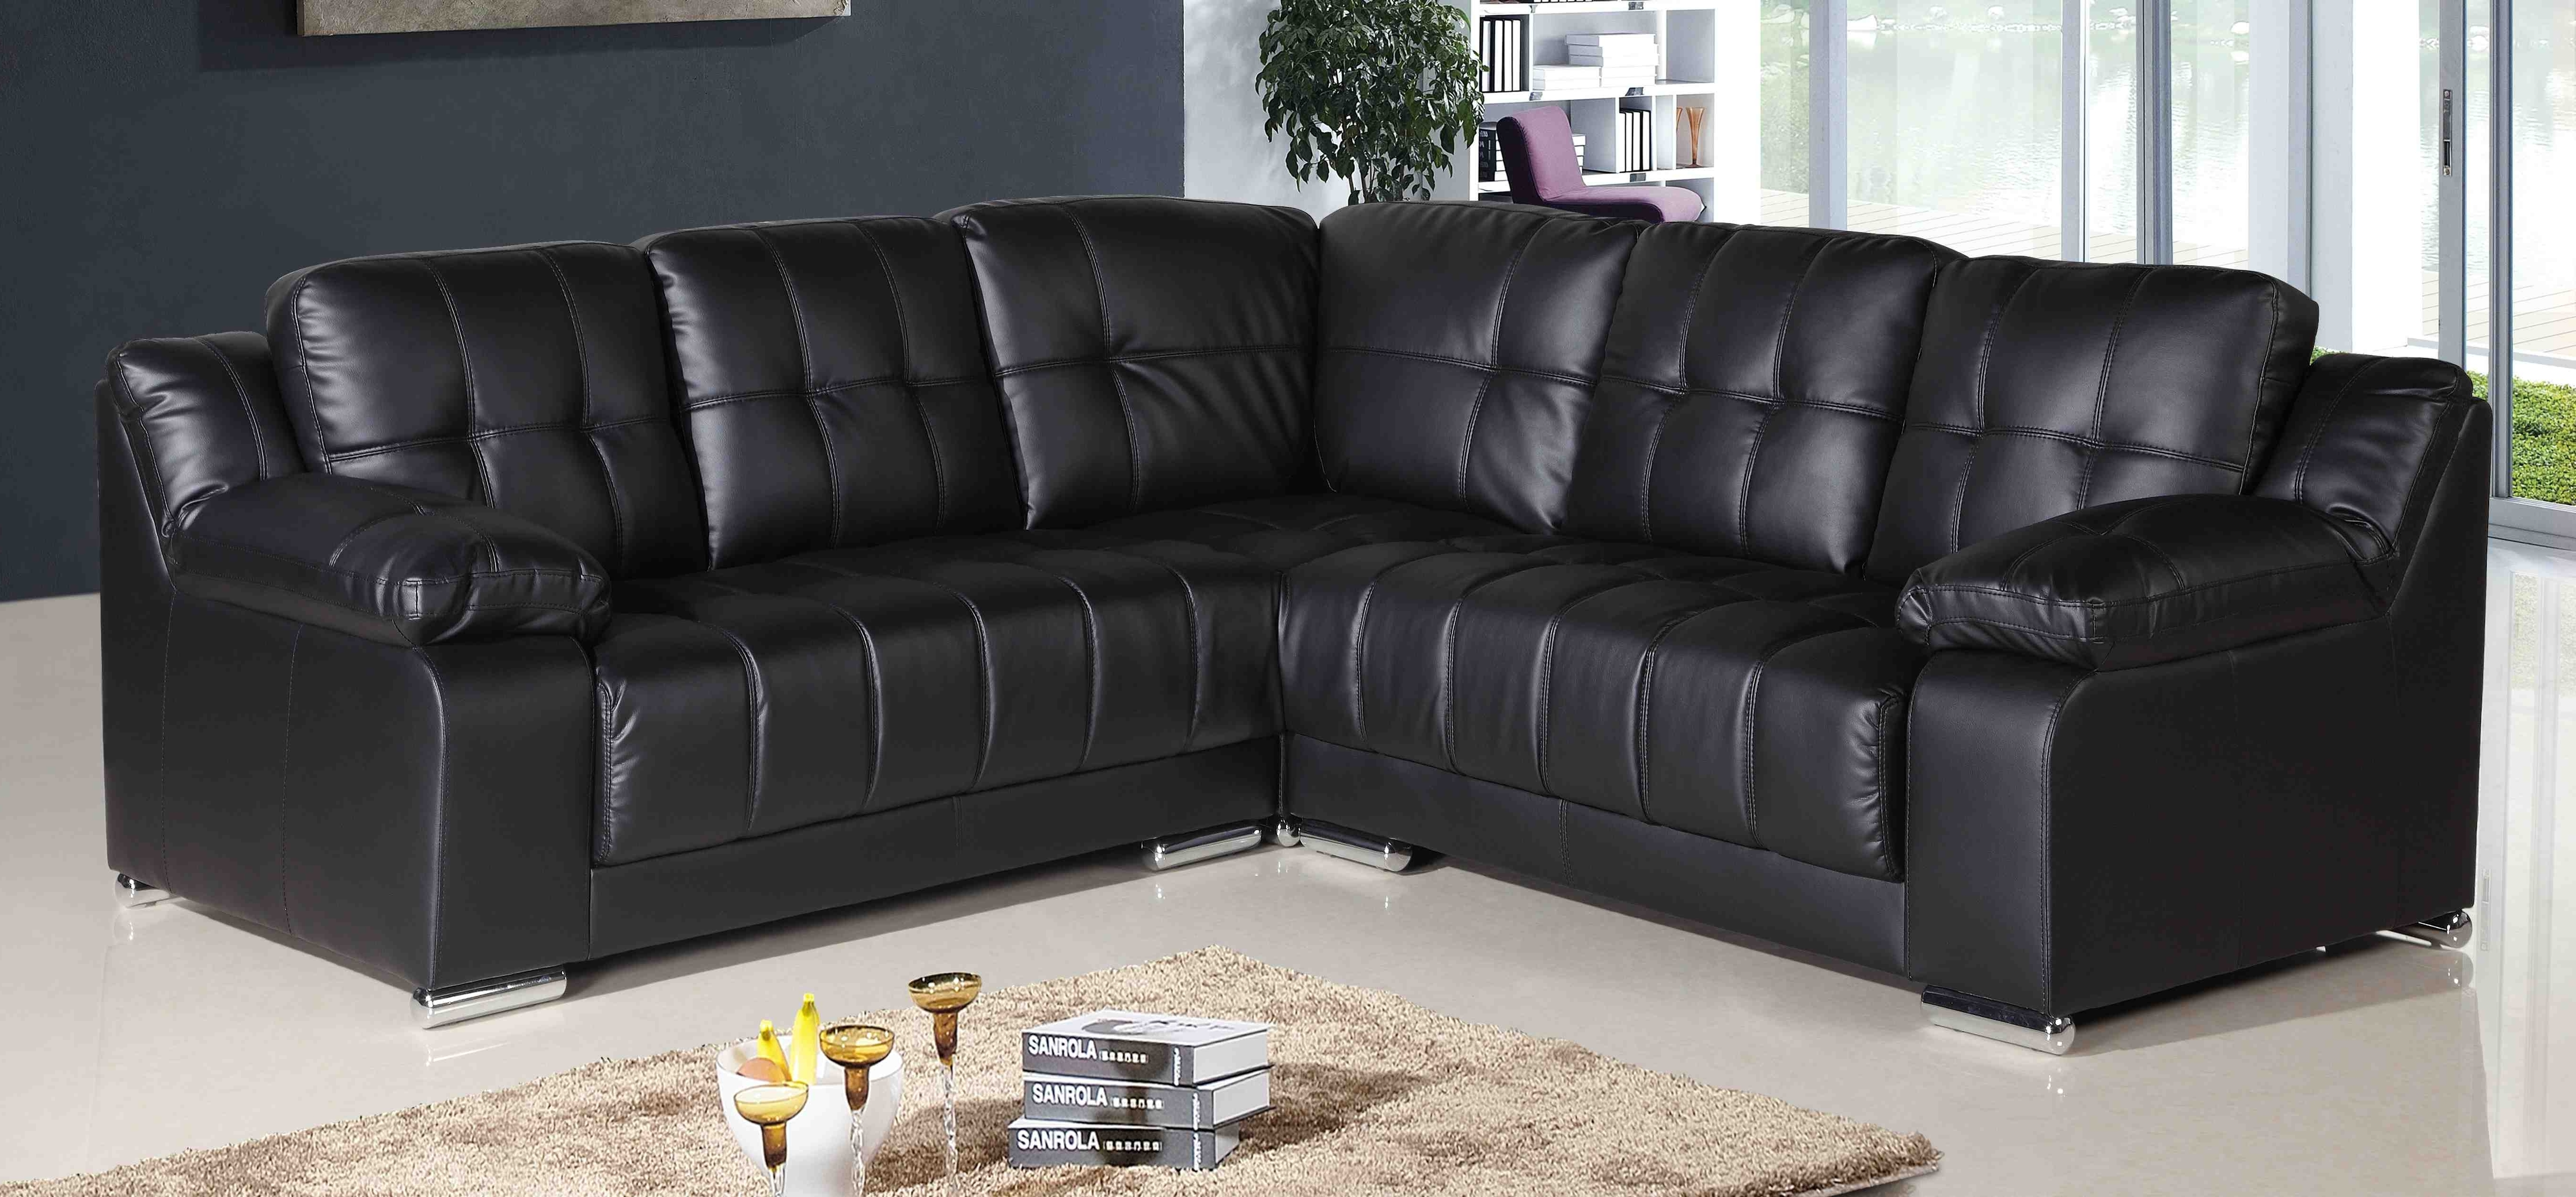 Extra Long Leather Corner Sofas • Leather Sofa For Best And Newest Leather Corner Sofas (View 4 of 20)